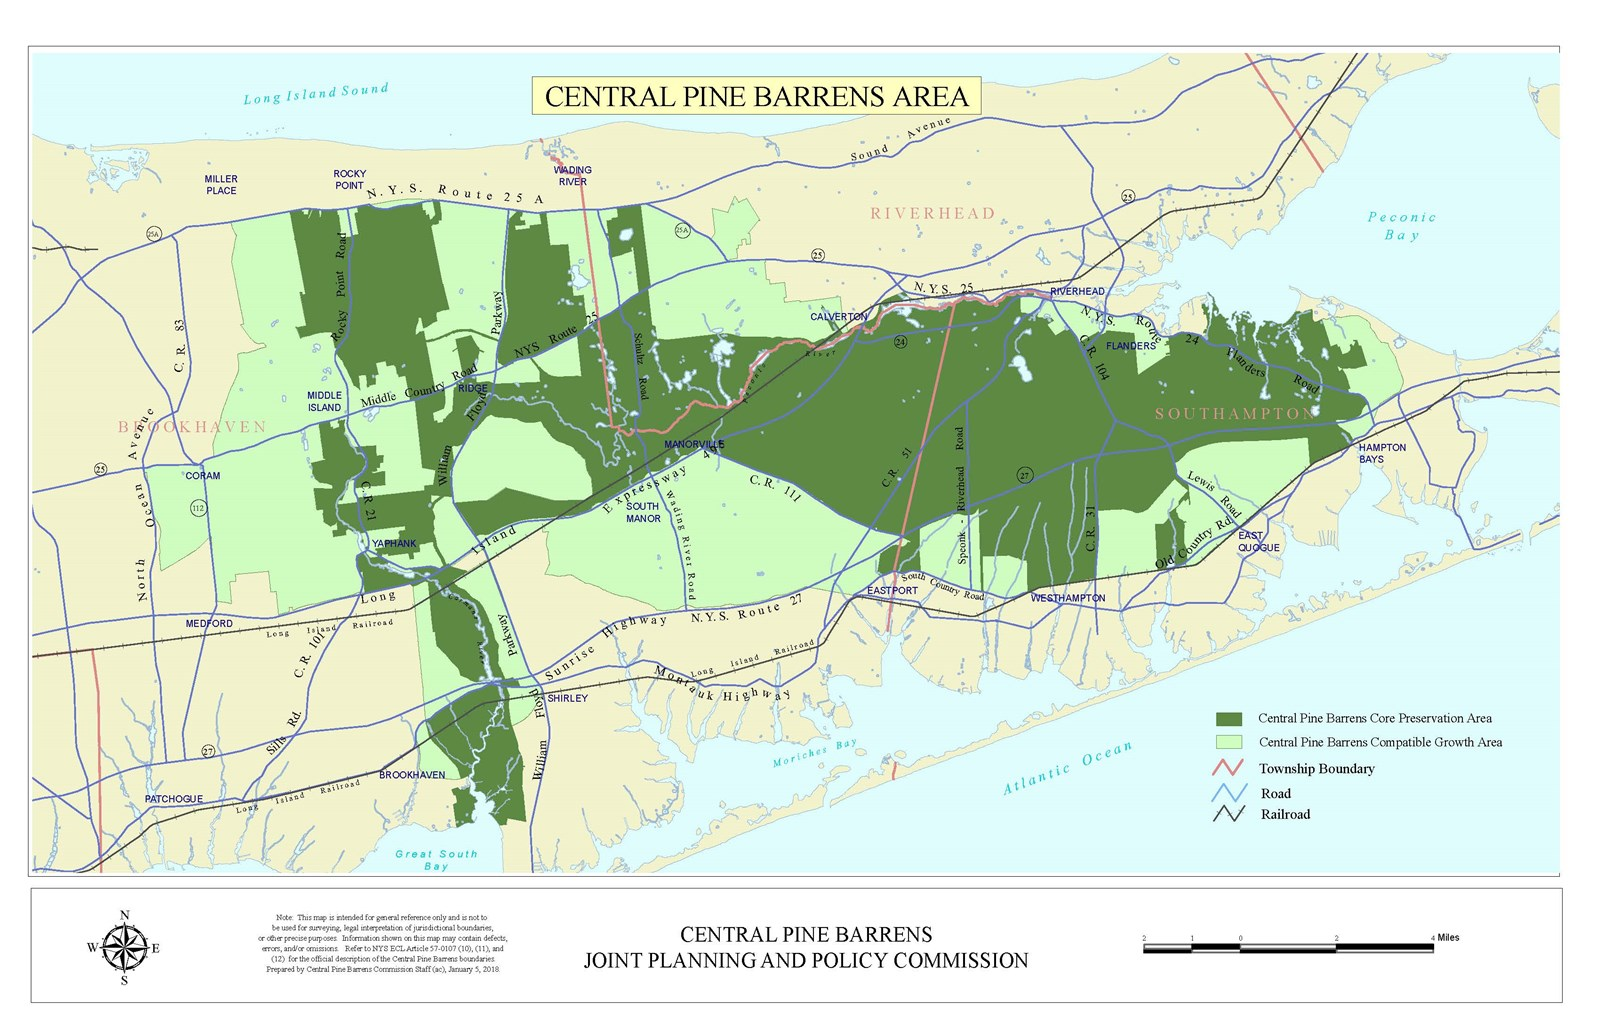 CPB_Area_Map_180101_11x17